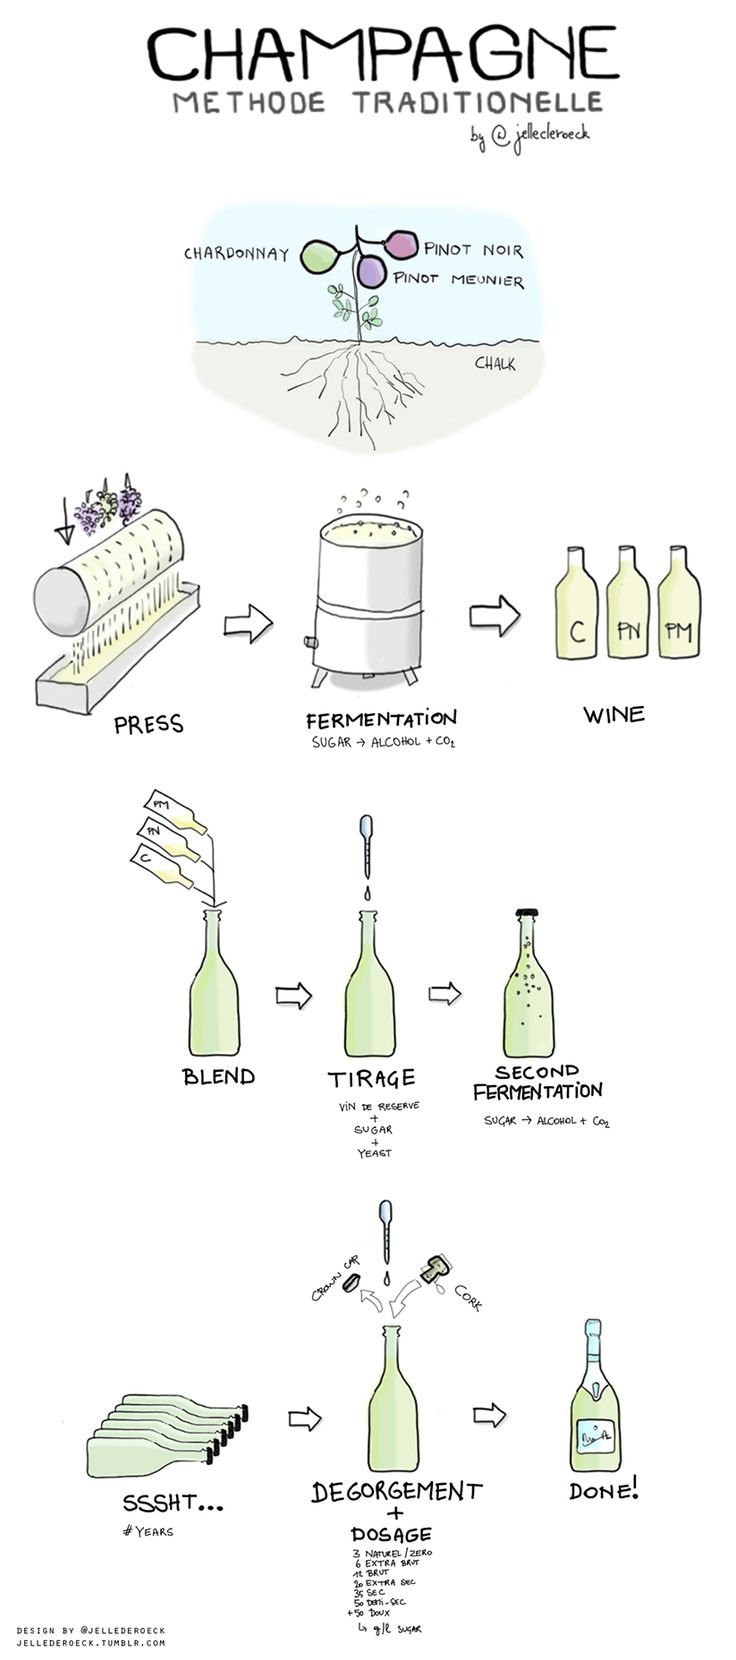 "[infographic] ""How Champagne is made - Traditional Method"" Jul-2013 designed by @JDR and published on Winefolly.com - Champagne Méthode Traditionelle"